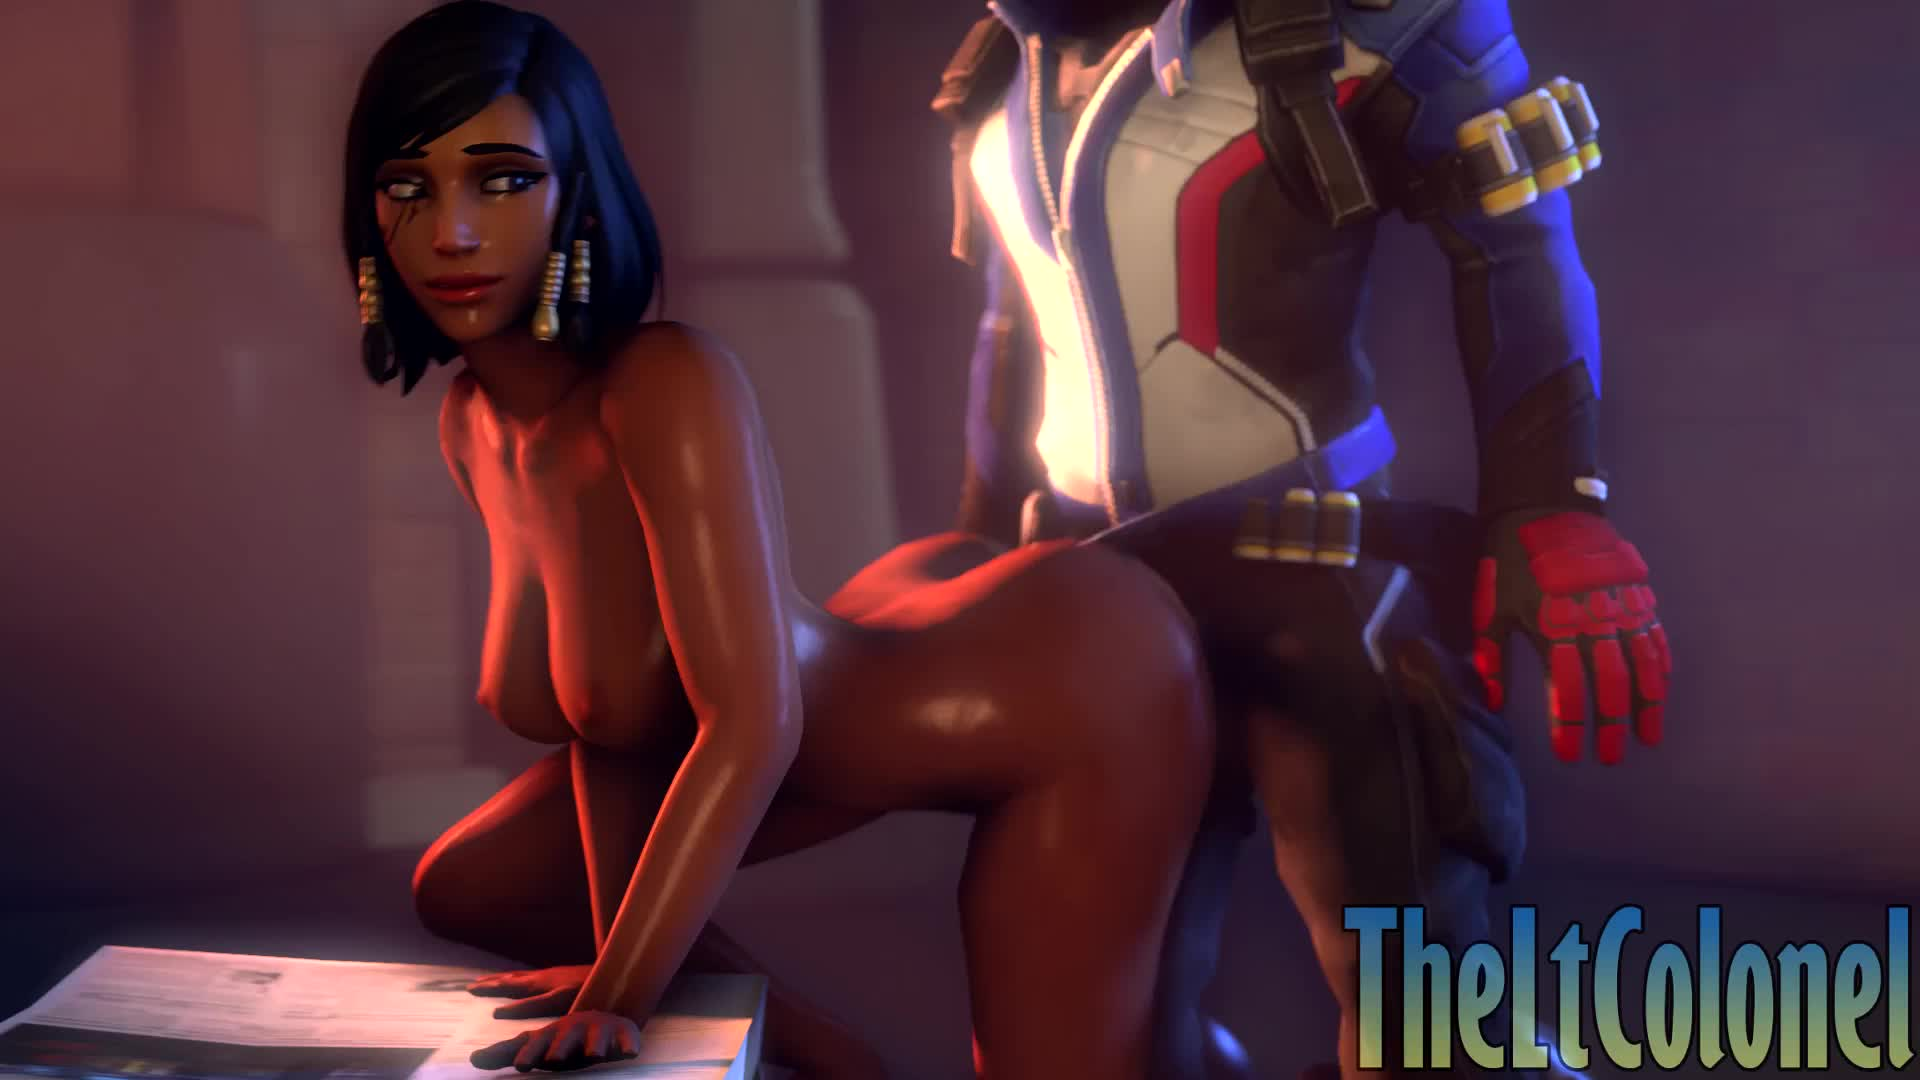 3D Animated Overwatch Pharah Soldier_76 Sound TheLtColonel // 1920x1080 // 5.7MB // webm